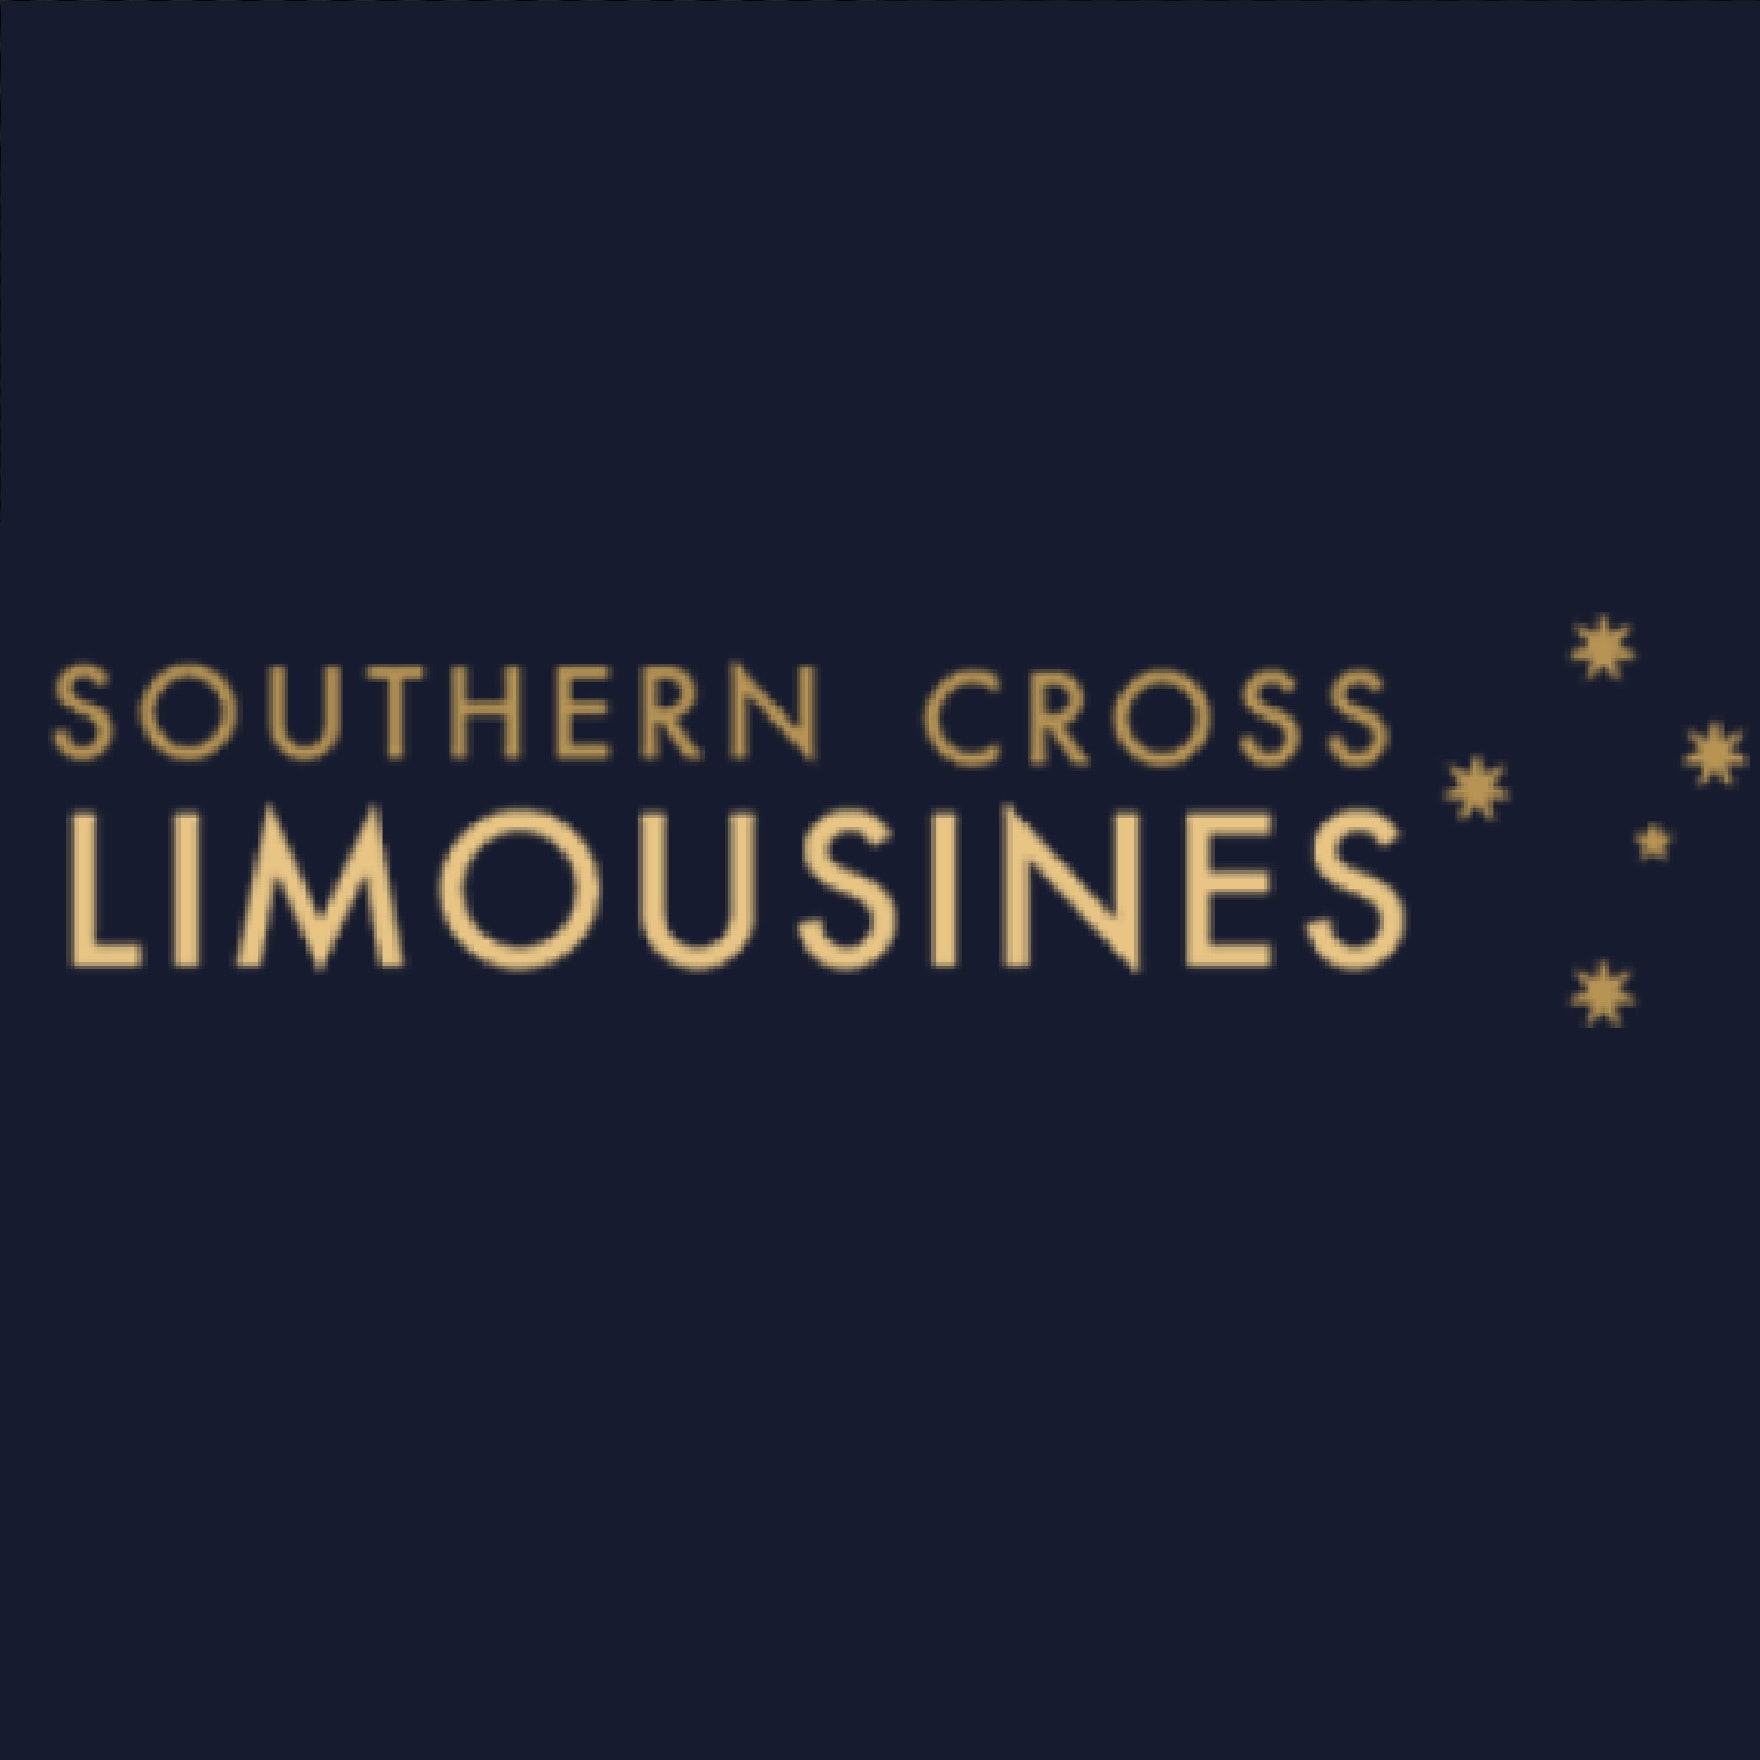 Southern Cross Limousine Cairns logo